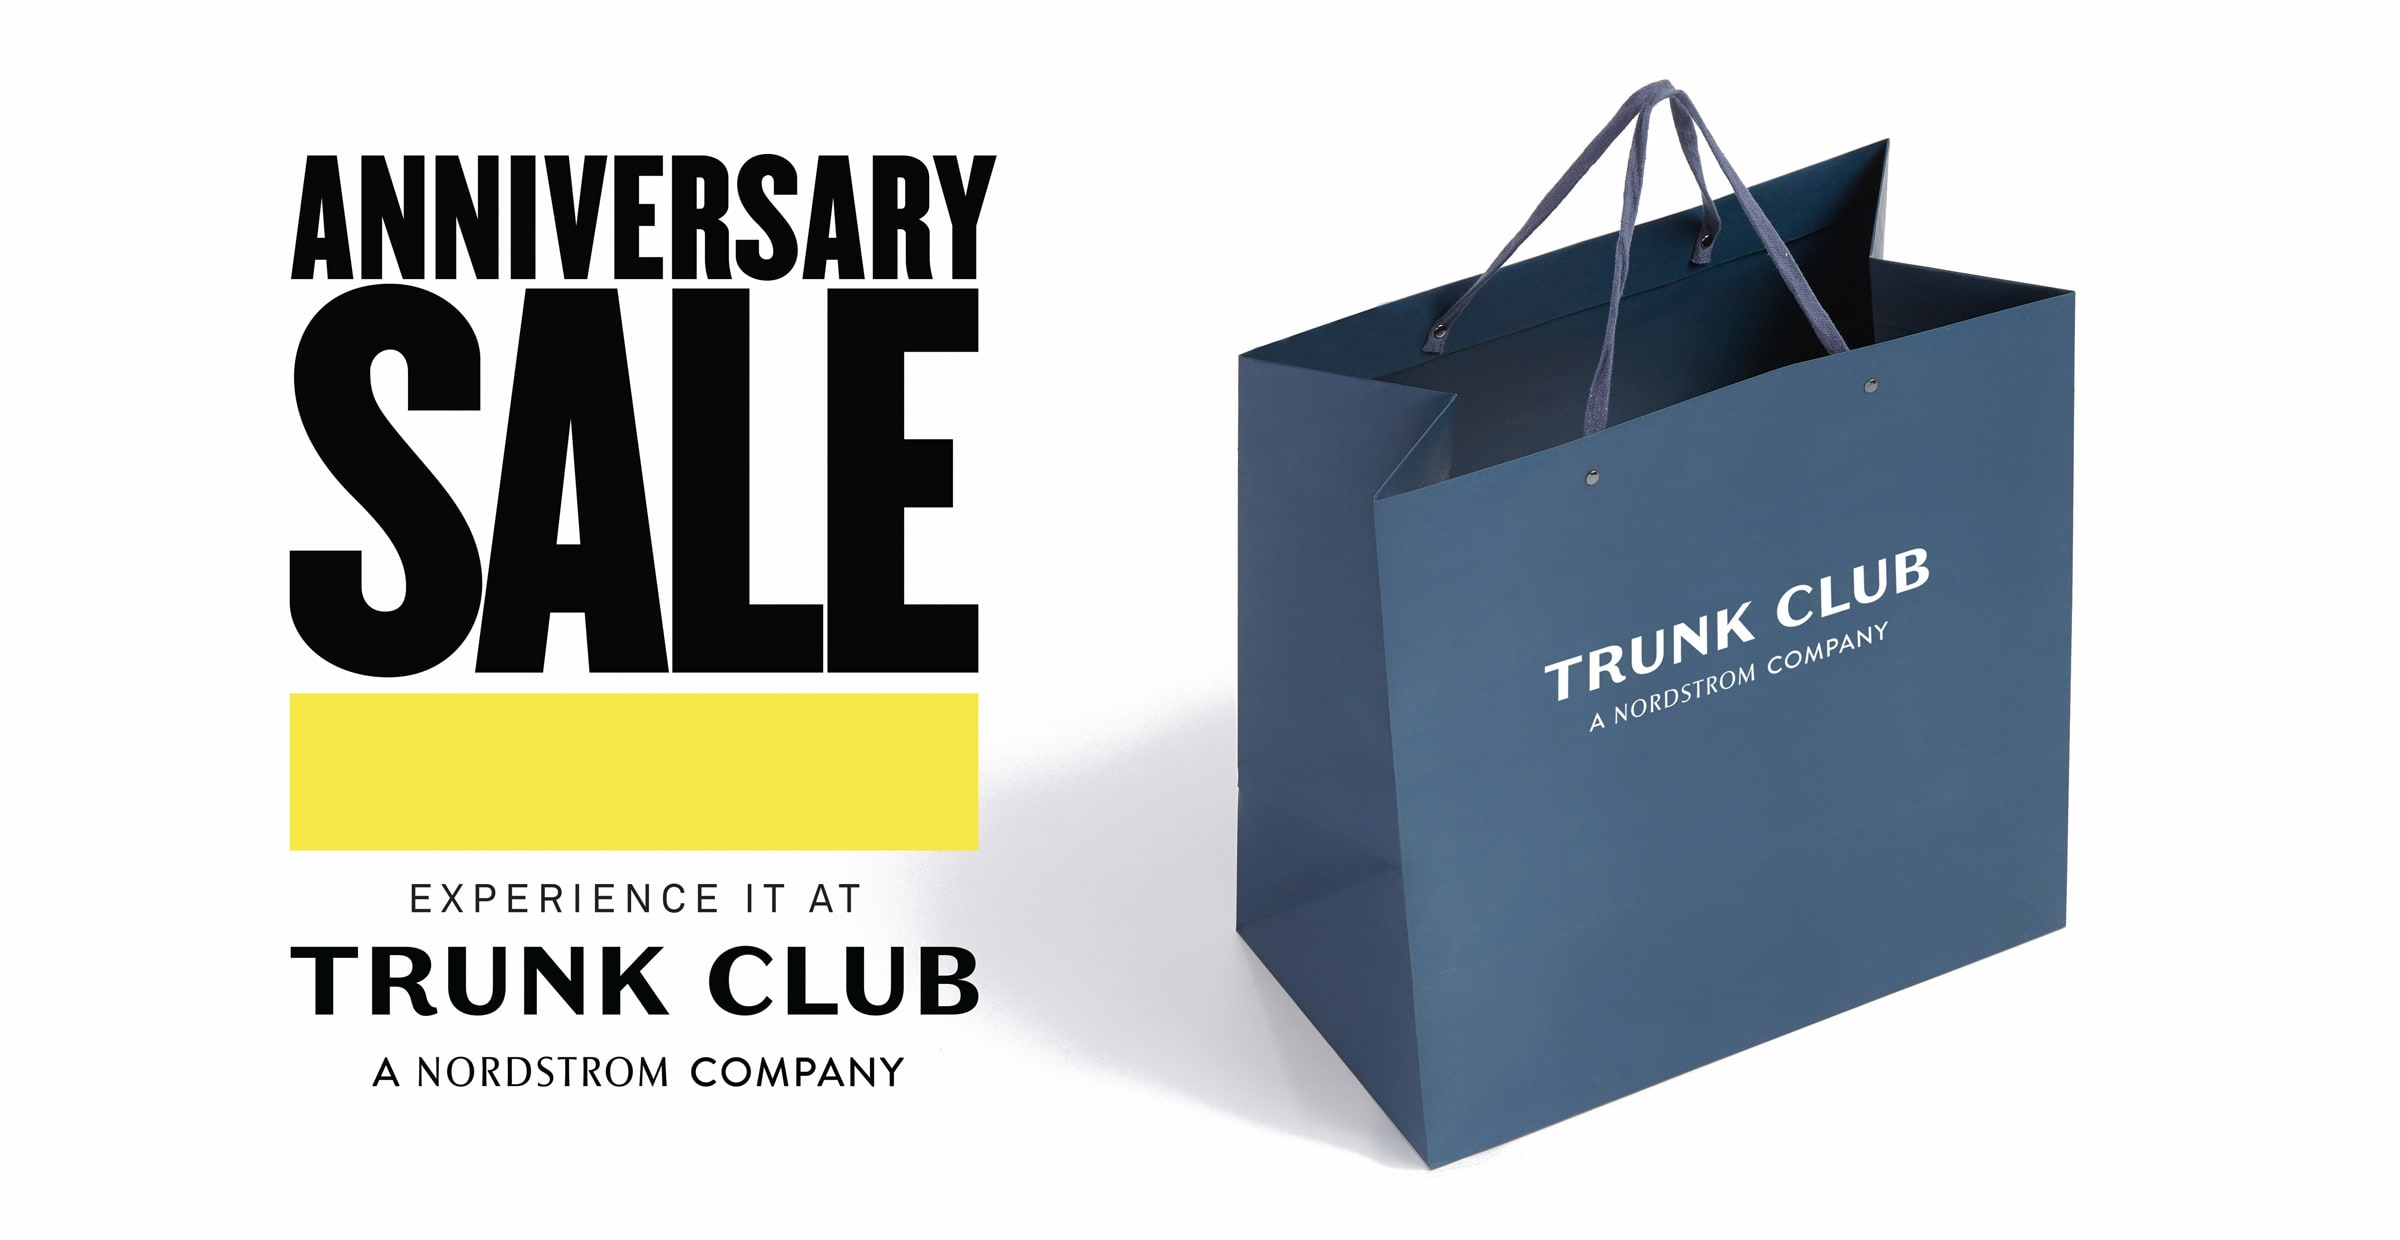 6 Reasons to Shop the Anniversary Sale at Trunk Club